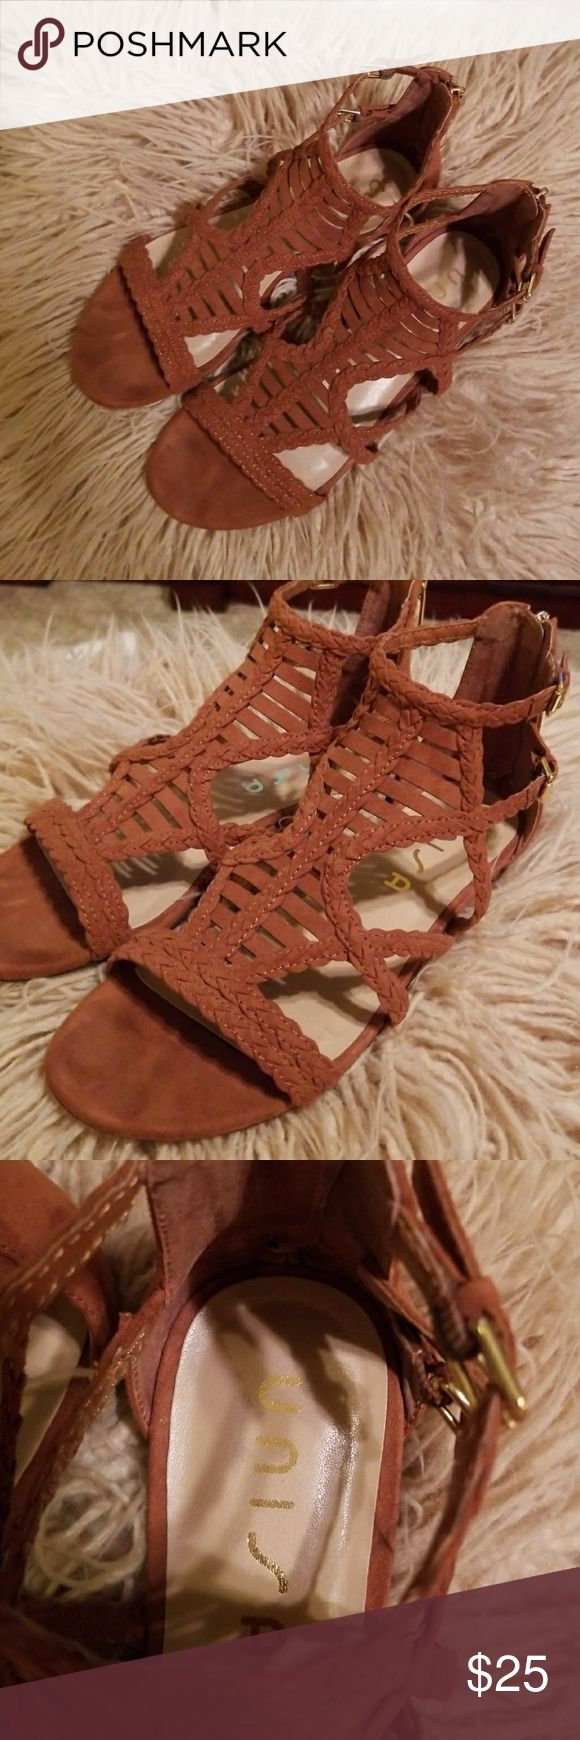 Unisa Camel Gladiator Dandal with Zip Up Back 9M Very cute and barely worn gladiator. Interesting detail with 2 adjustable straps with gold buckles and a gold zipper up the back. Size 9M Unisa Shoes Sandals